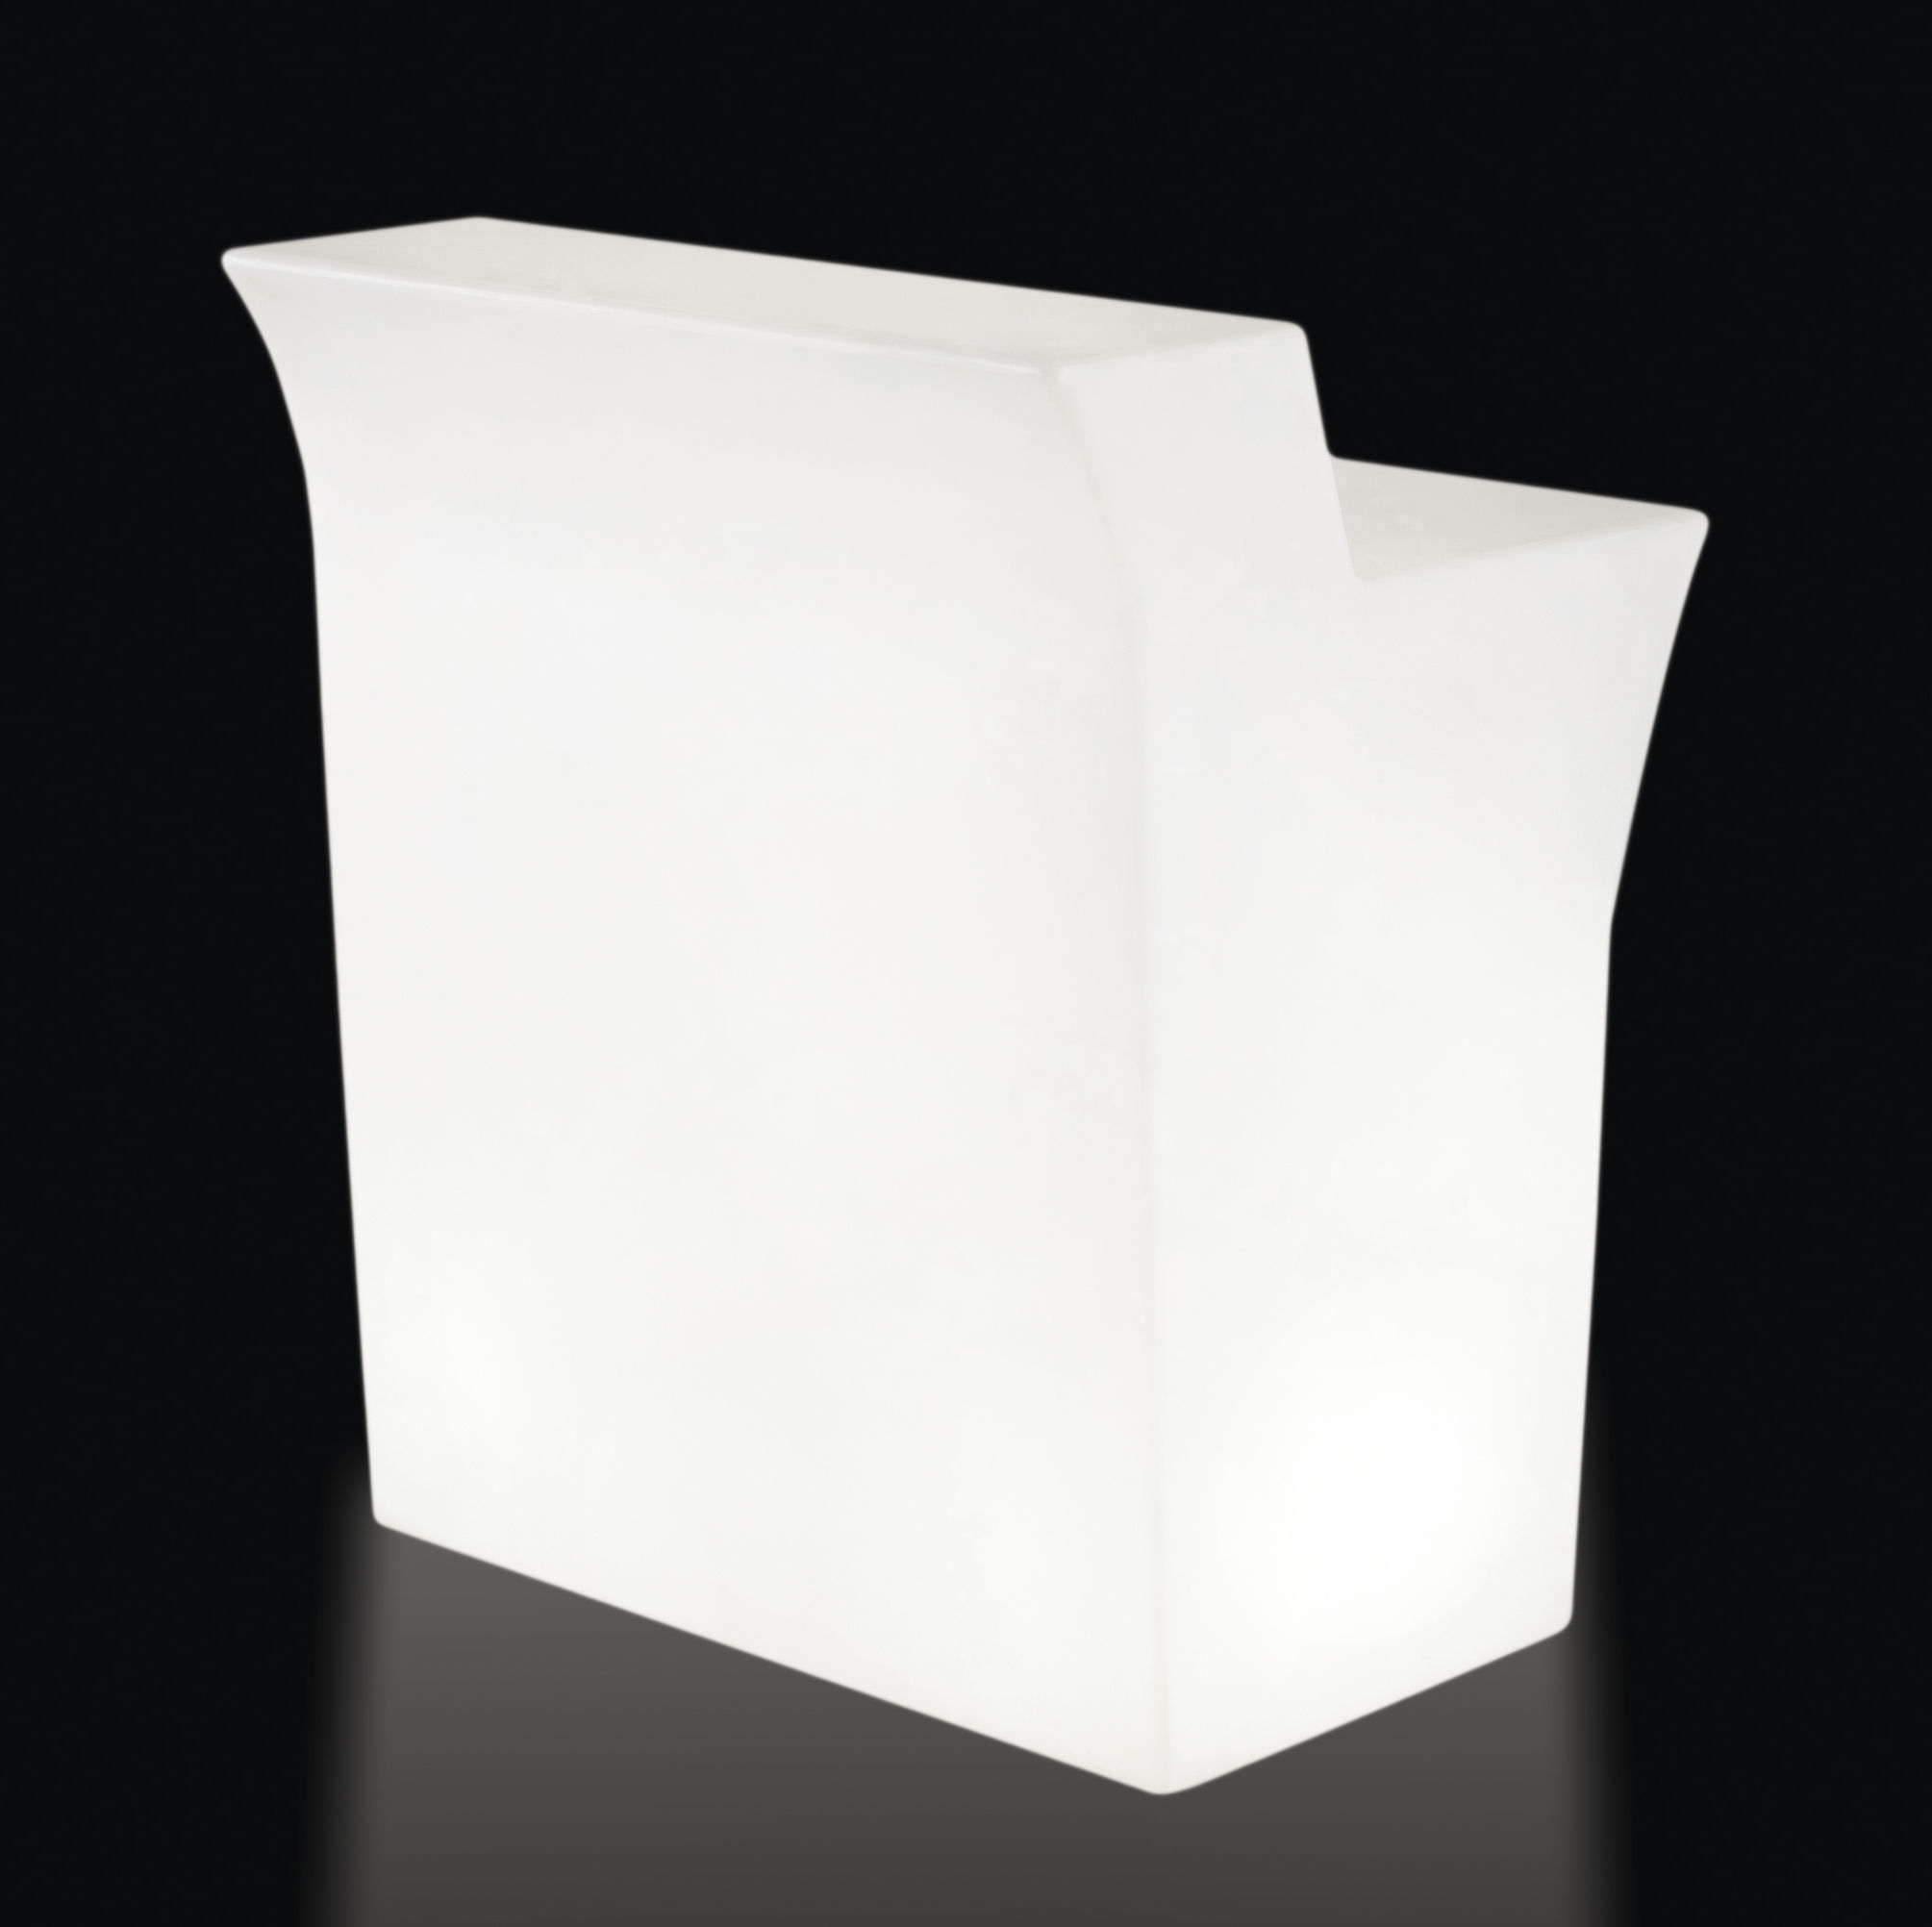 Furniture - High Tables - Jumbo LED RGB Luminous bar by Slide - White - recyclable polyethylene